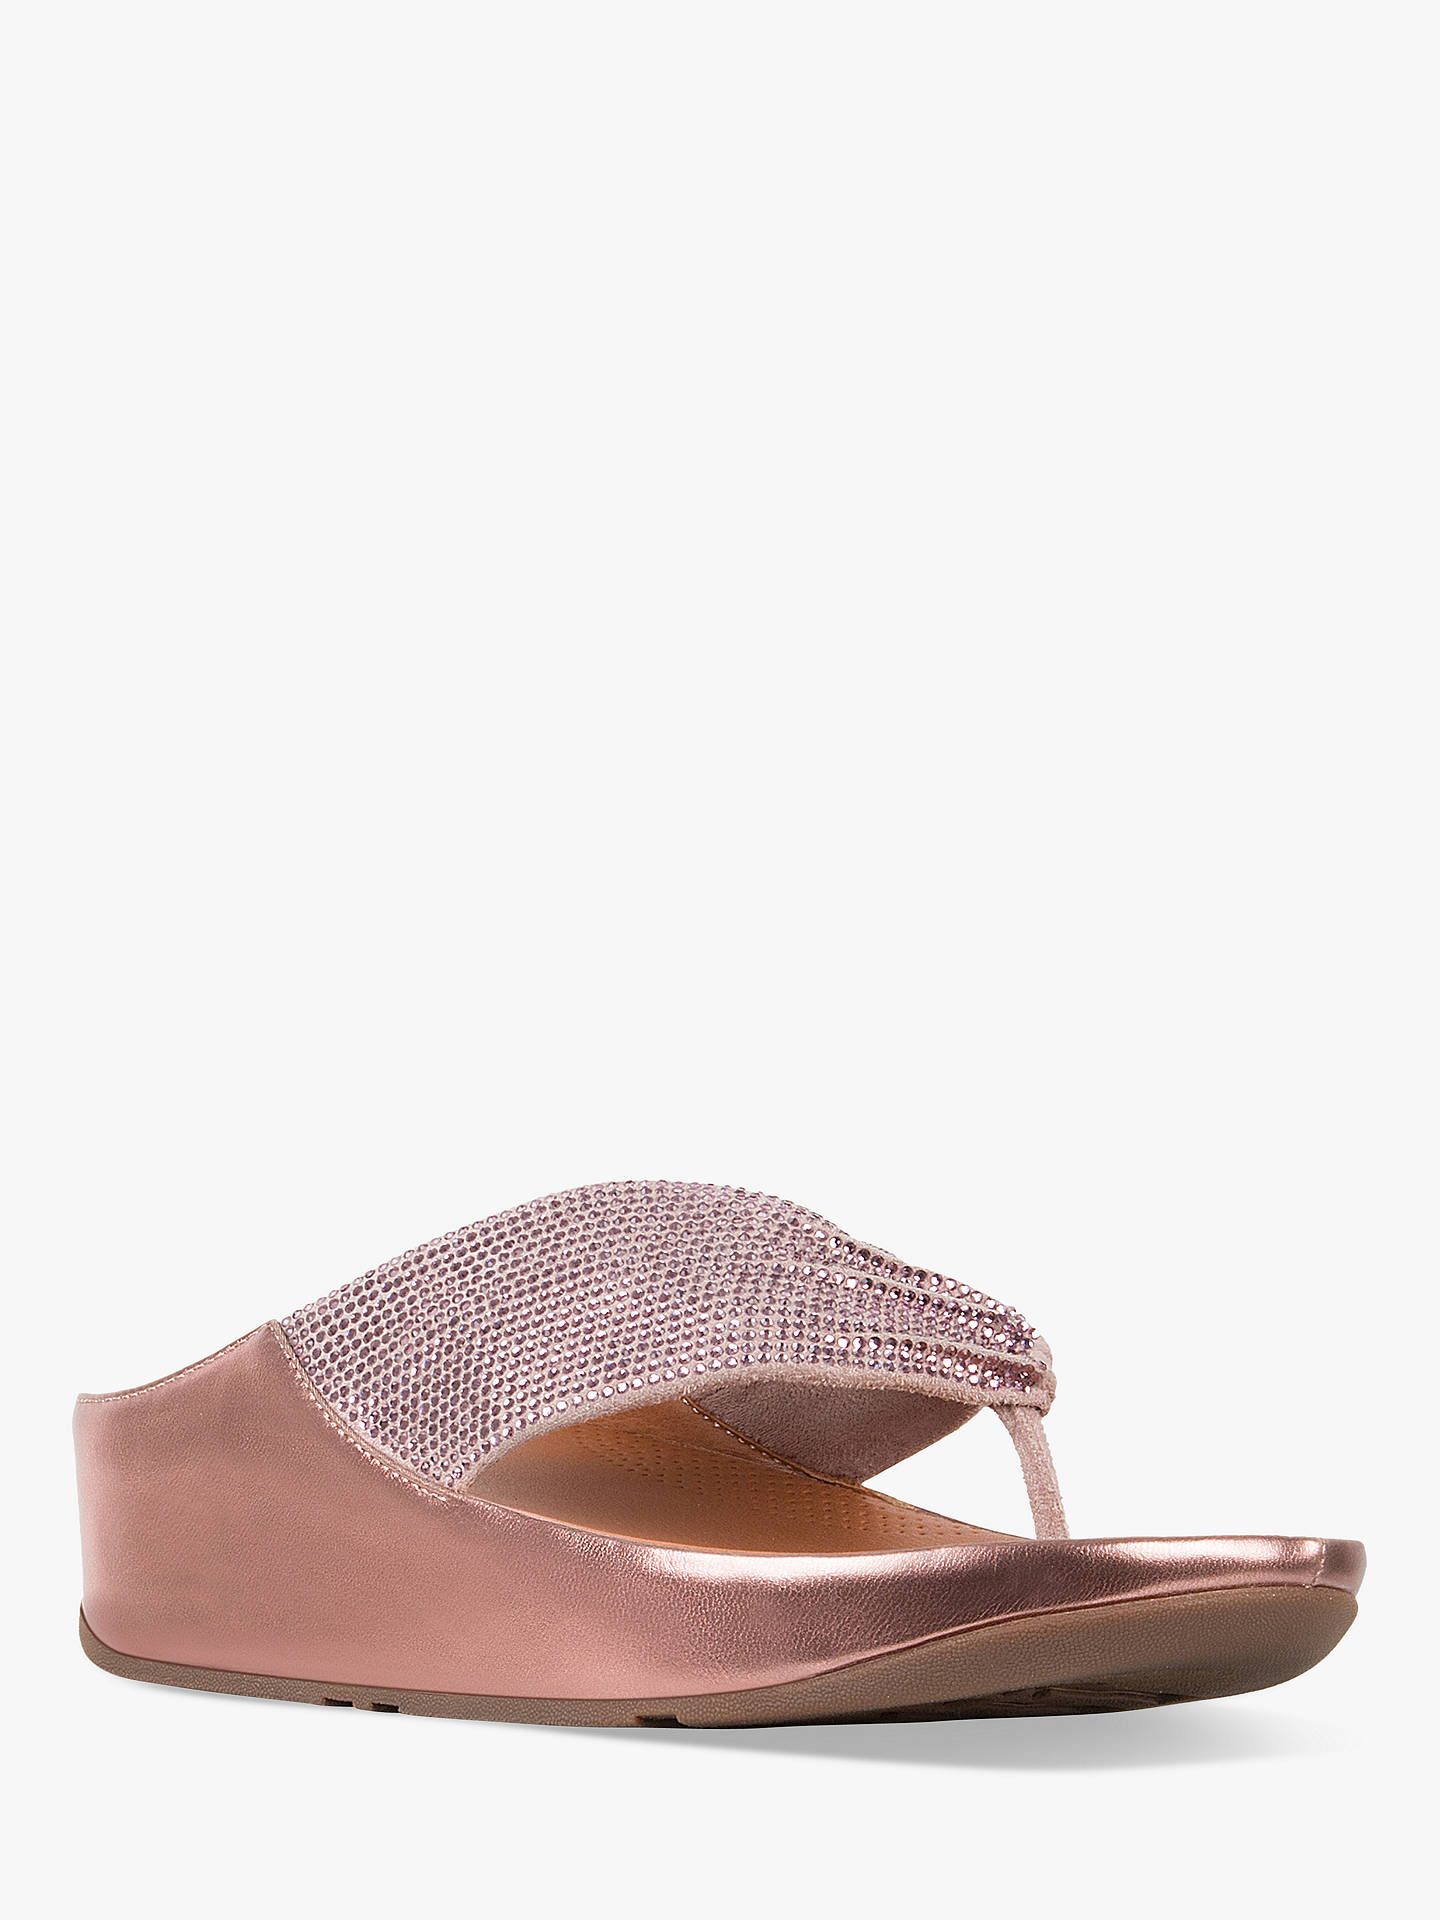 quality design c9dbf 3cd61 FitFlop Twiss Crystall Toe Post Sandals, Pink at John Lewis ...